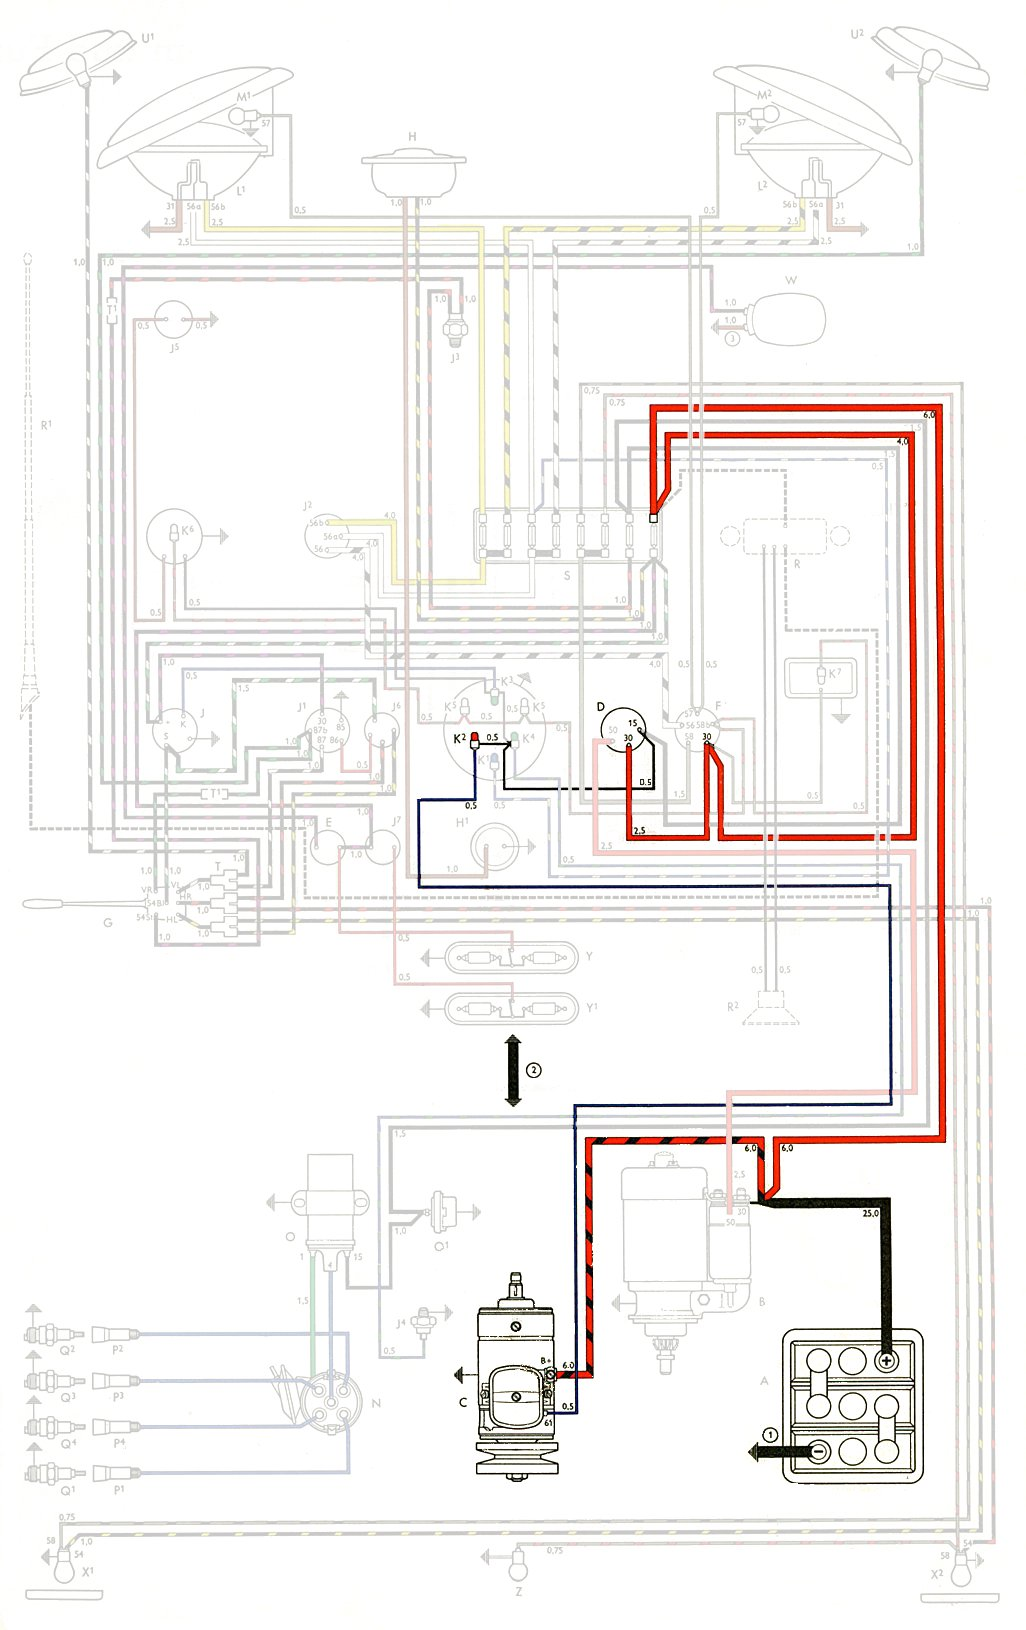 Type 2 Wiring Diagrams Well Pump To Generator